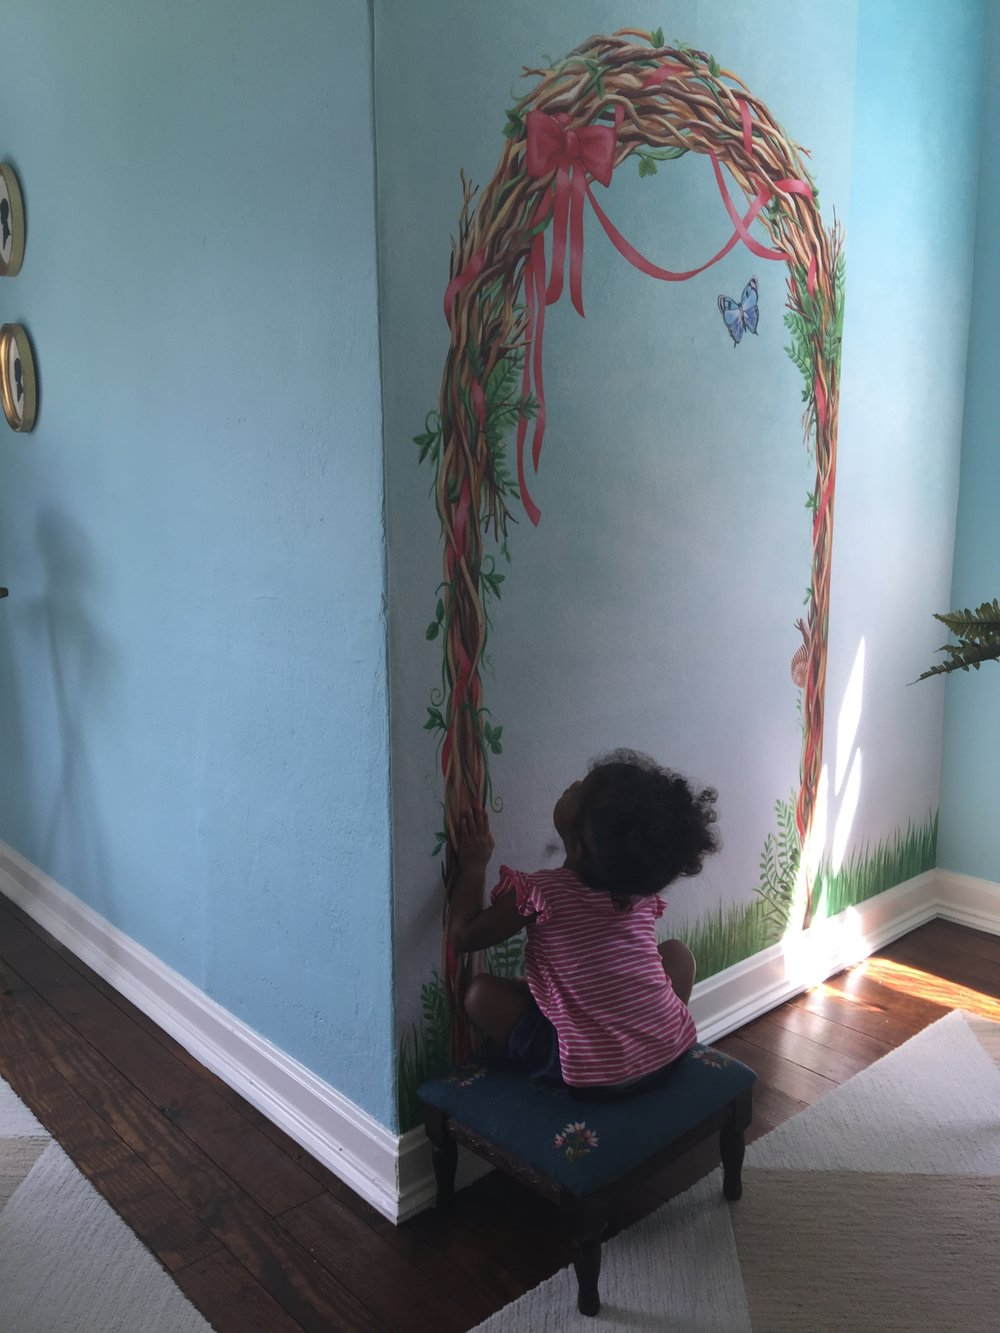 Ava - checking out mural.JPG